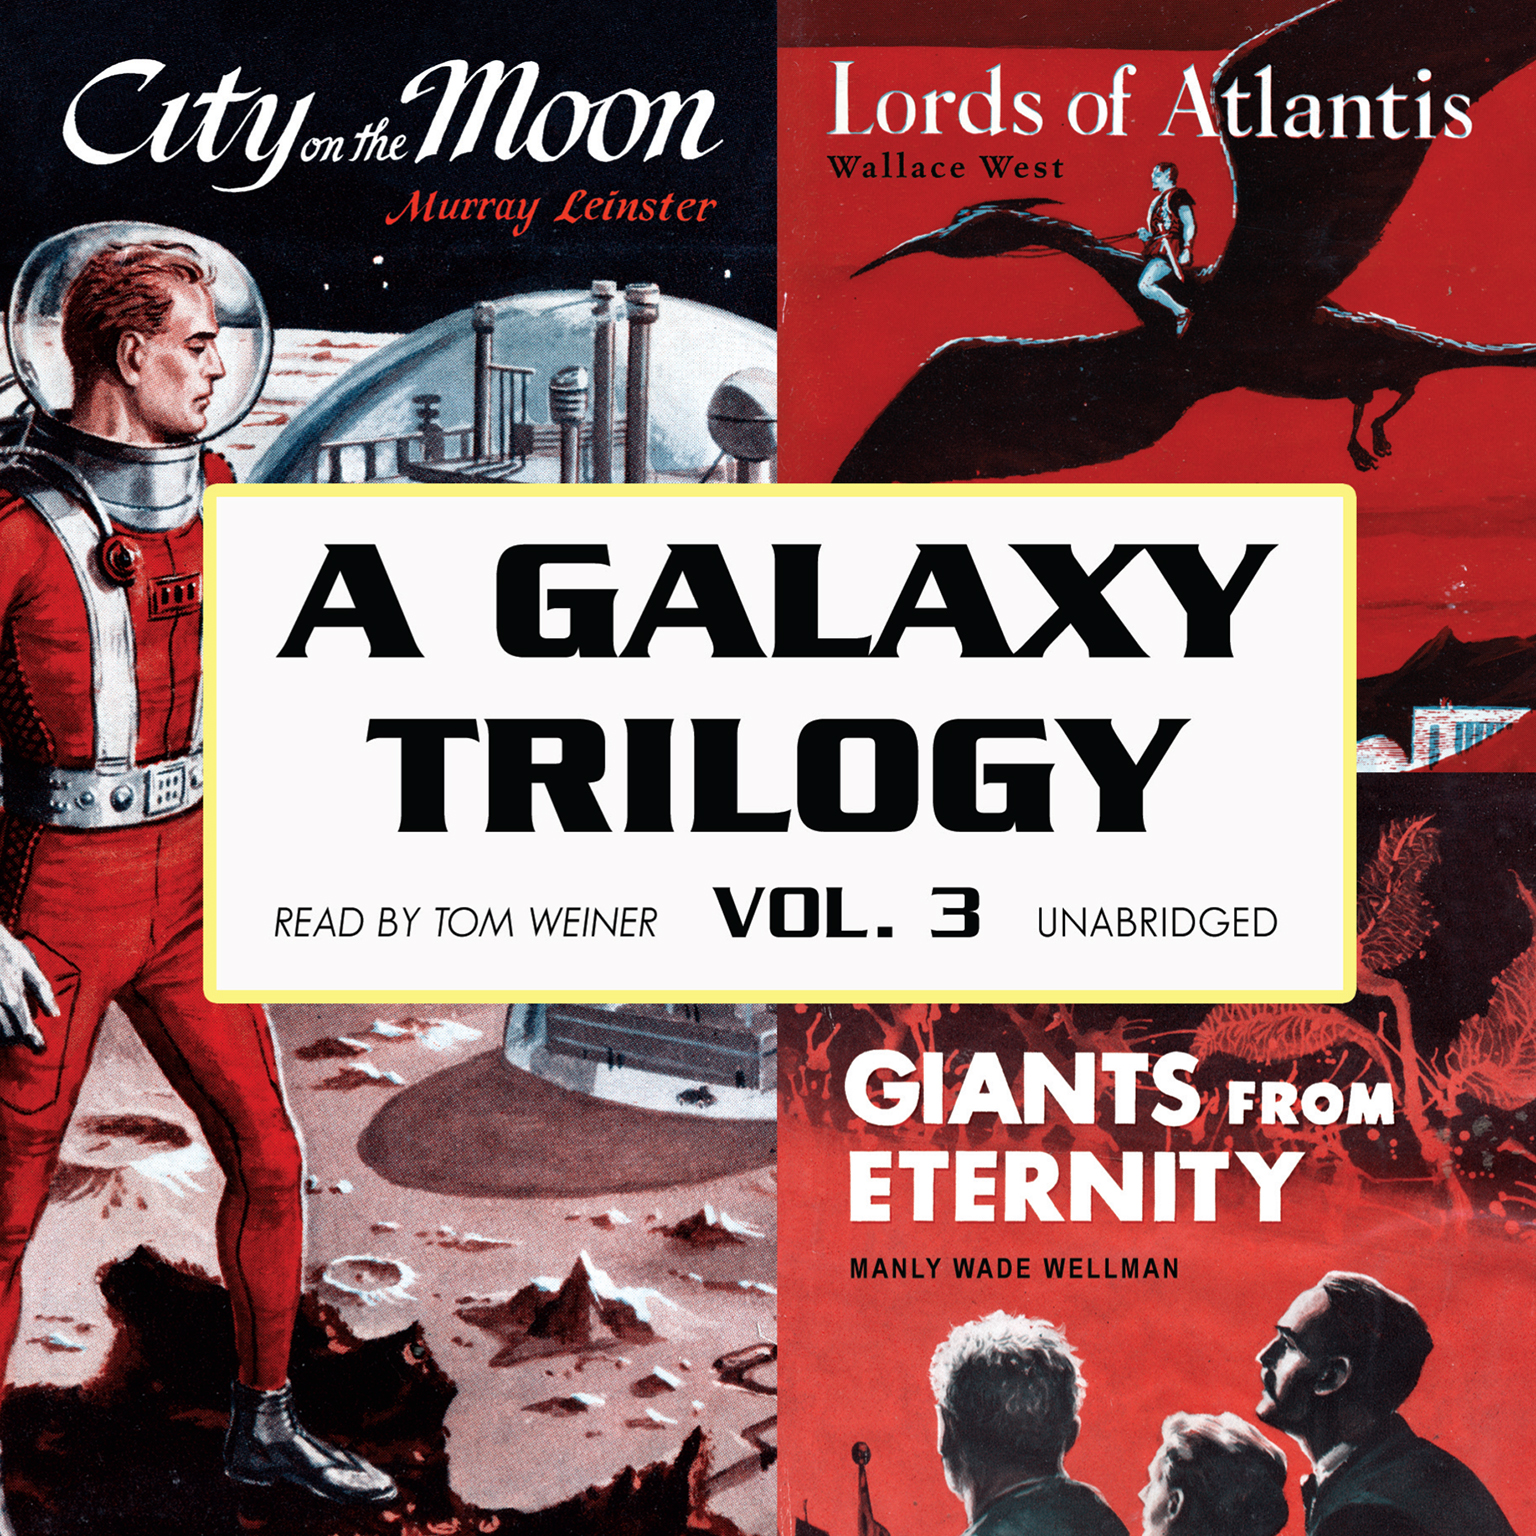 Printable A Galaxy Trilogy, Vol. 3: Giants from Eternity, Lords of Atlantis, and City on the Moon Audiobook Cover Art